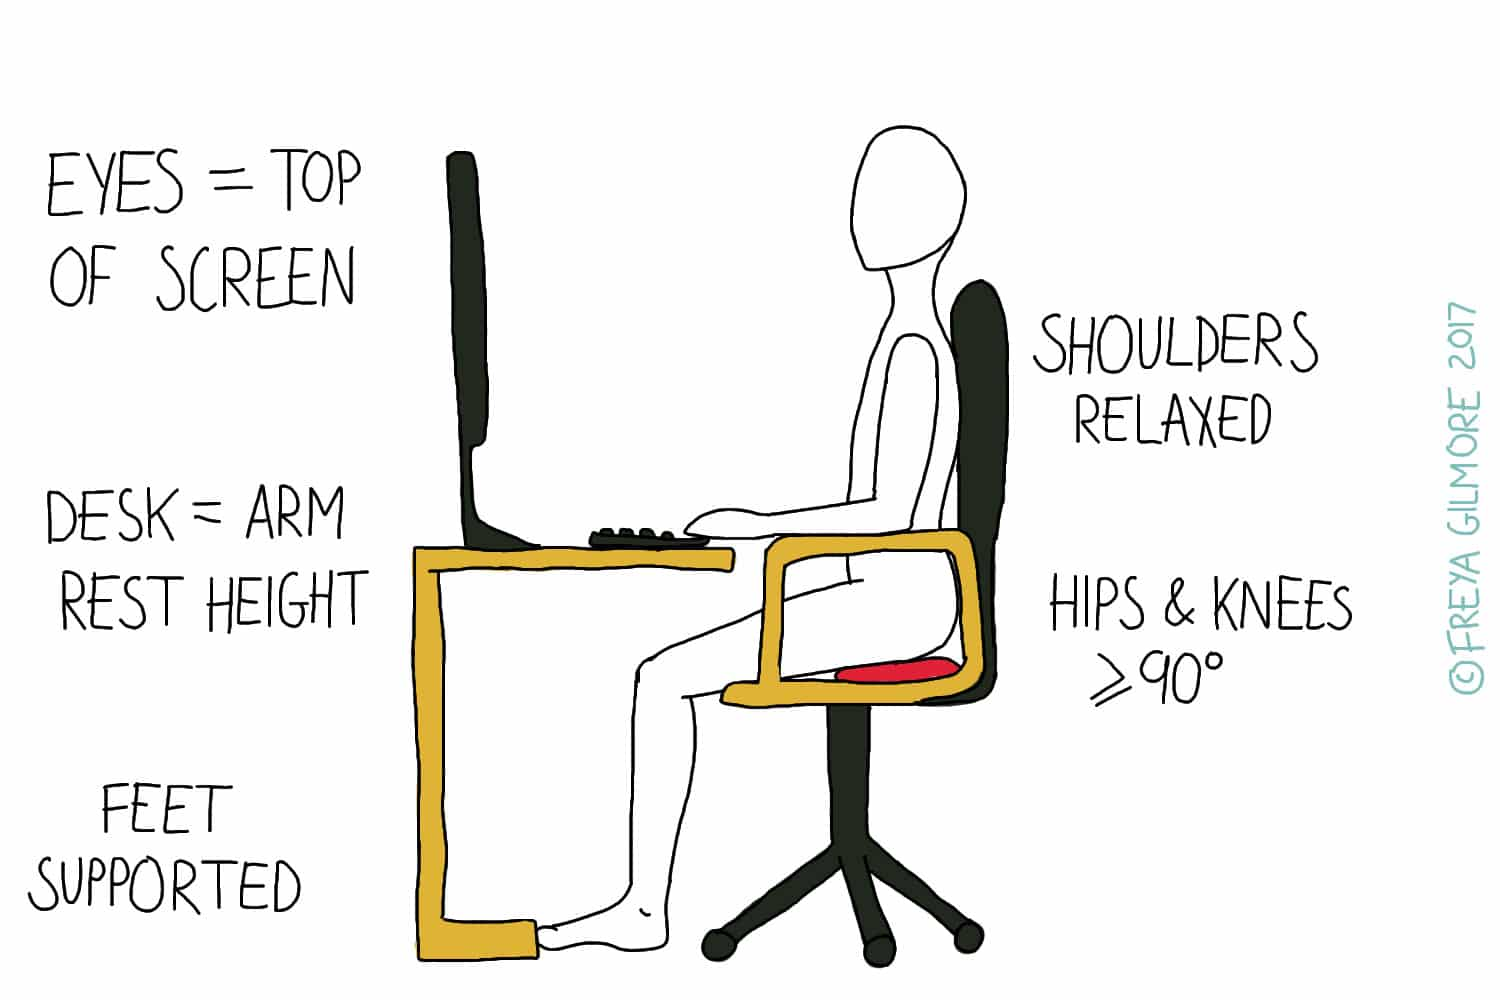 image of how to position yourself for best work from home ergonomics